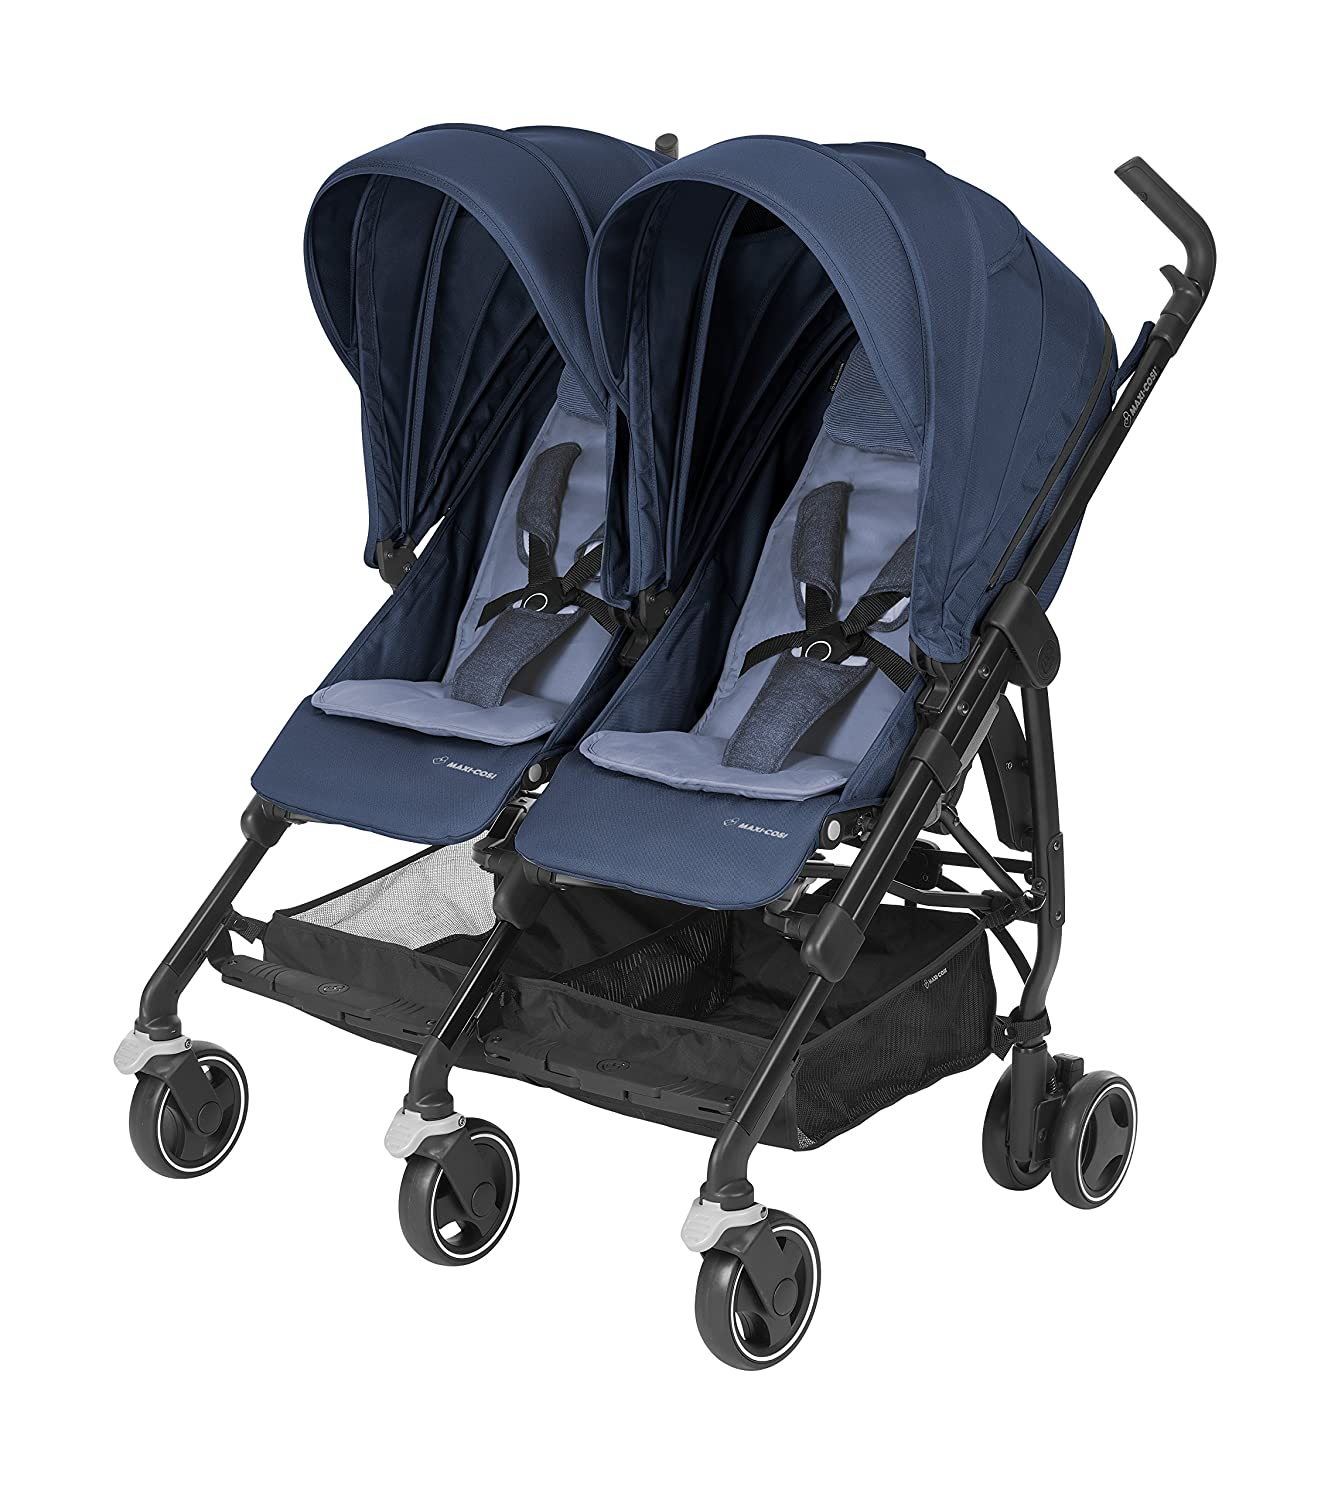 MAXI COSI Dana for 2 Newborn Double Stroller